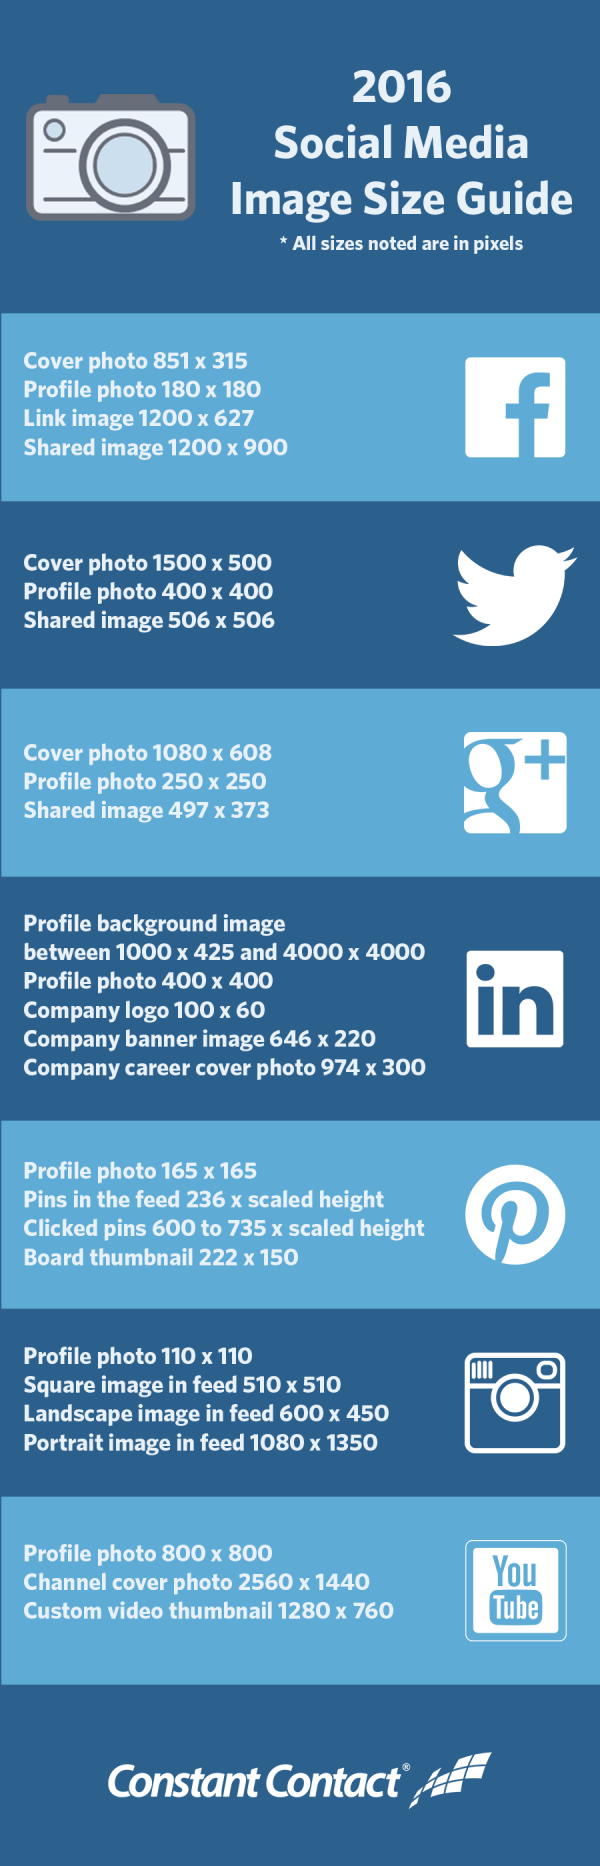 guidence for social media images